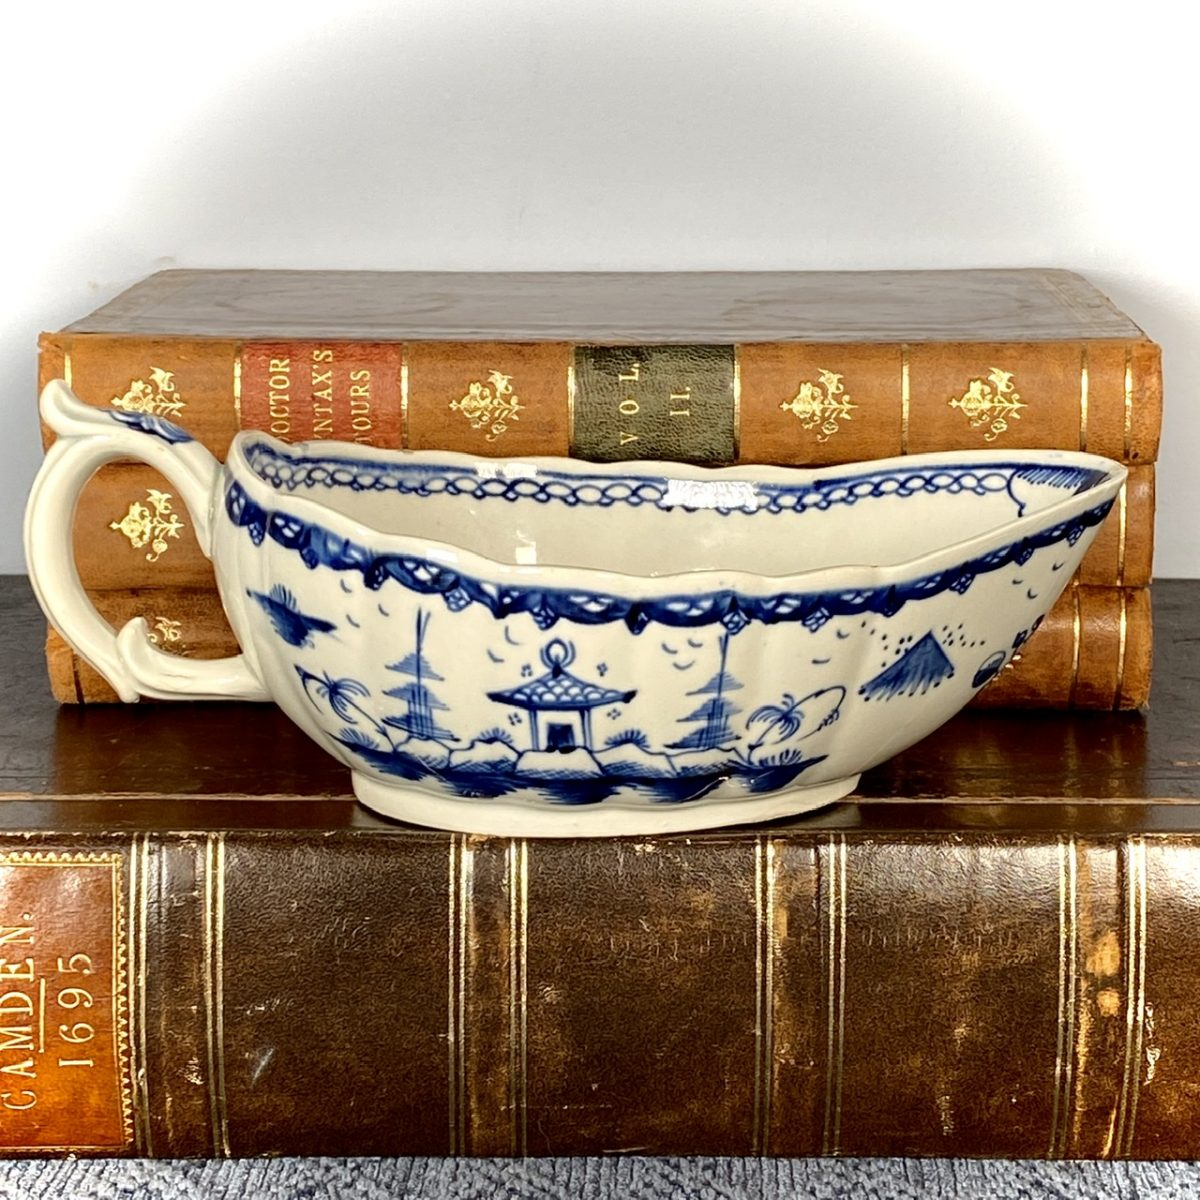 Late C18th English Pottery Chinoiserie Sauceboat